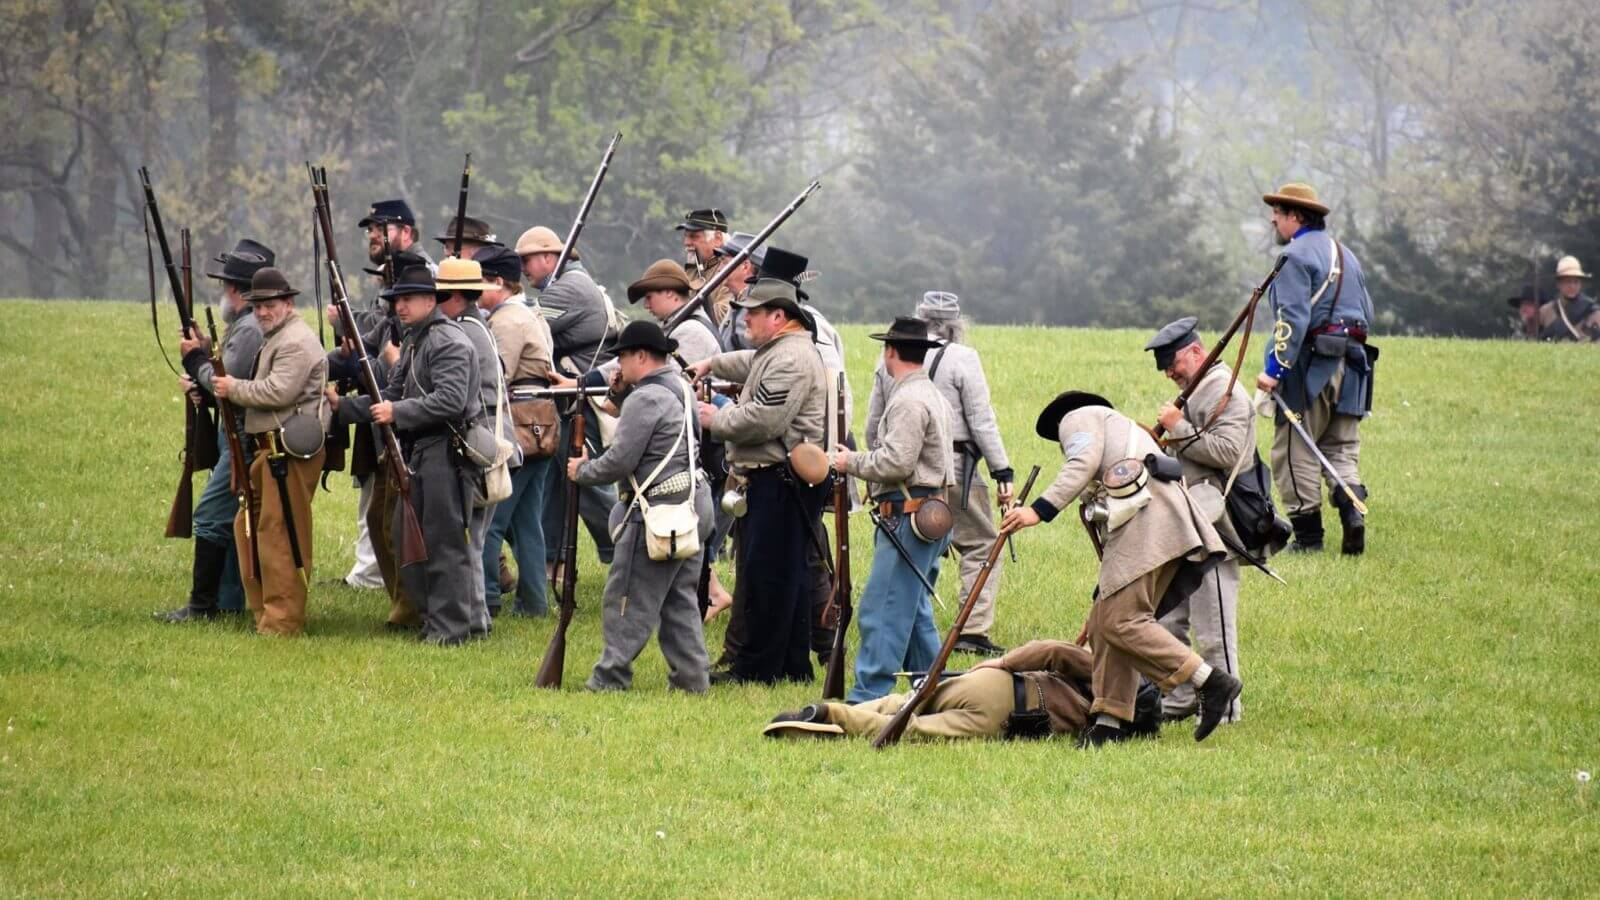 War reenactment in Blackford County, Indiana